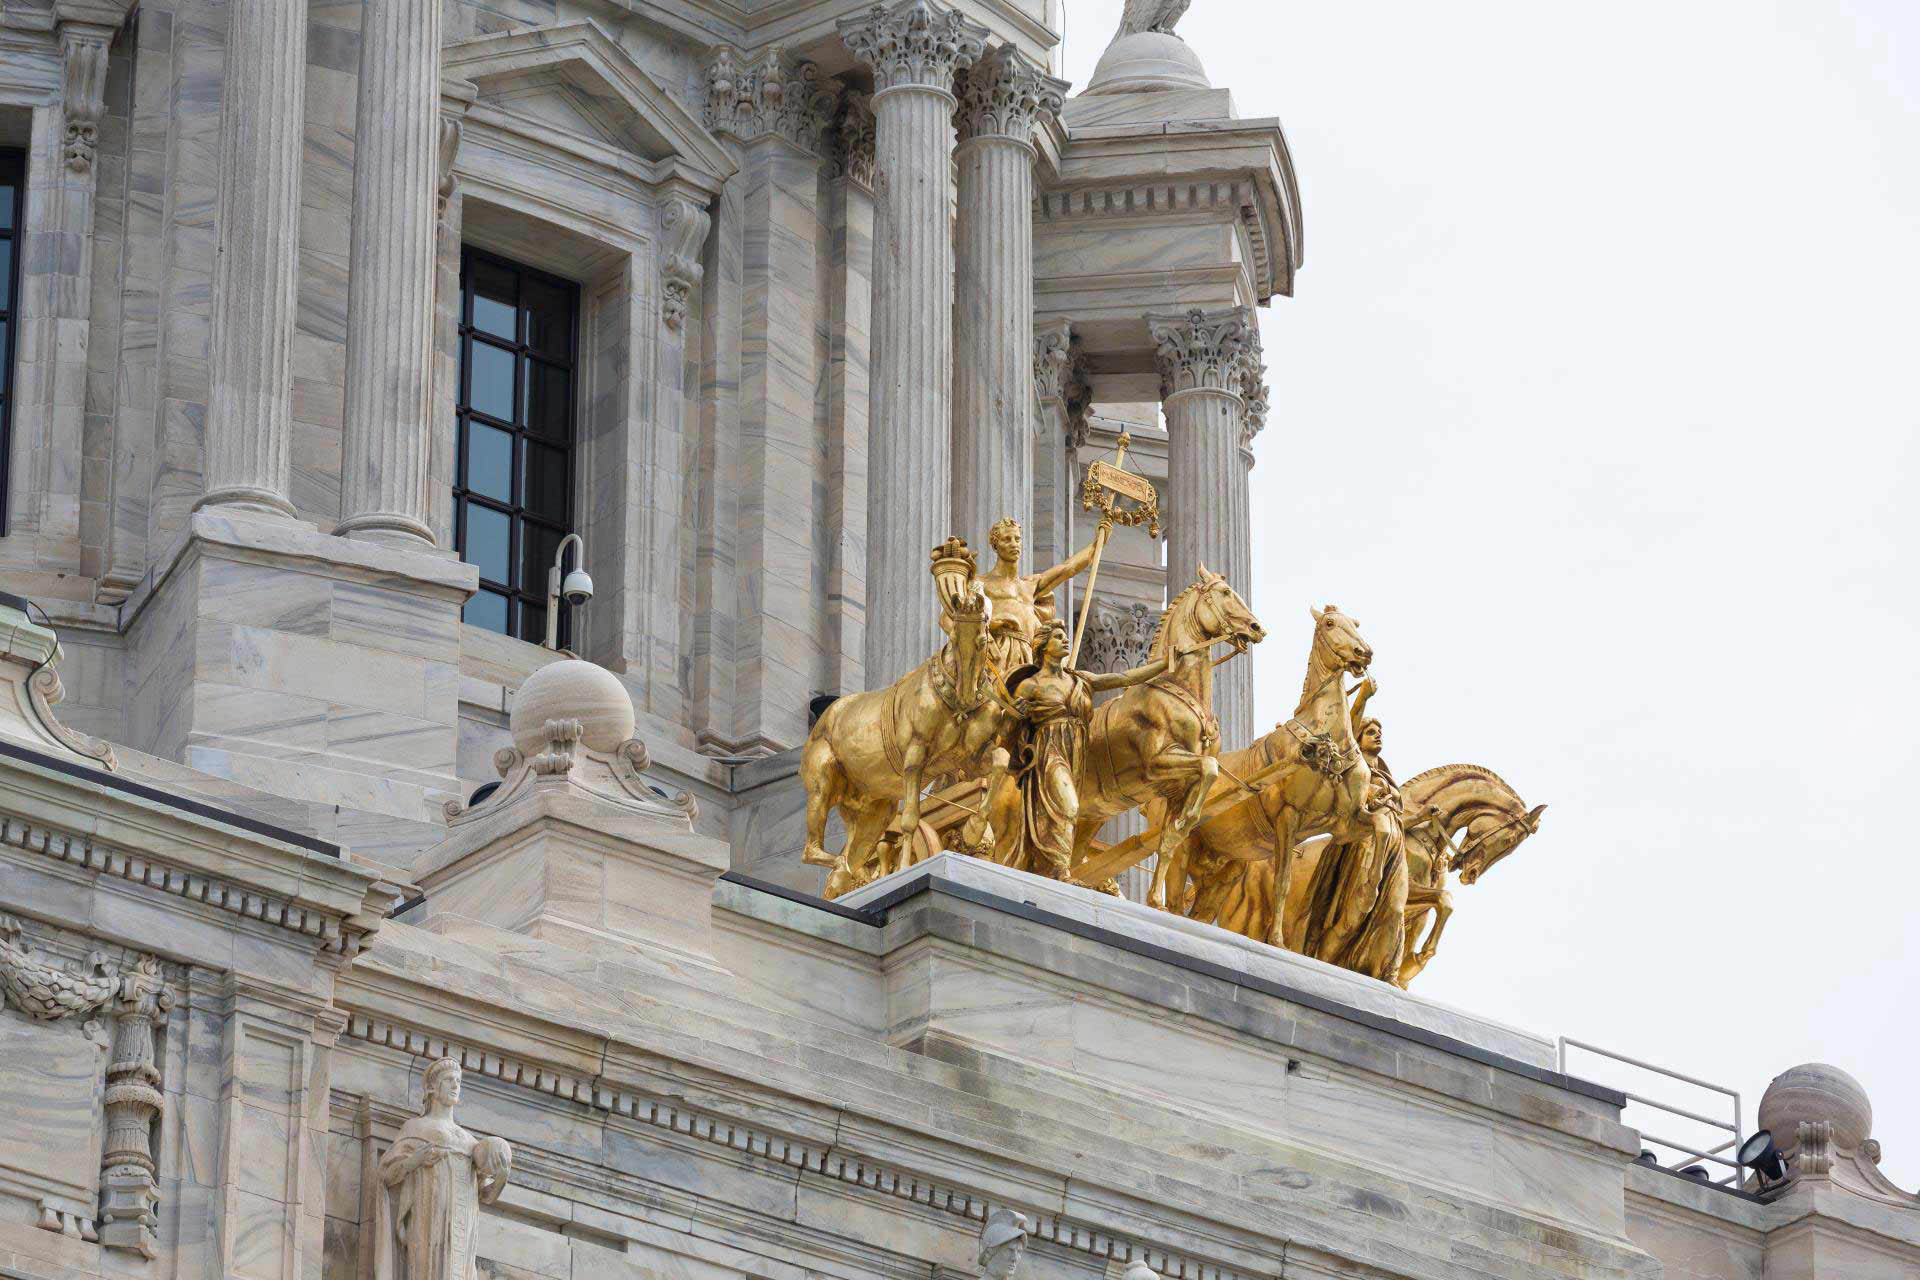 A side view of the Quadriga